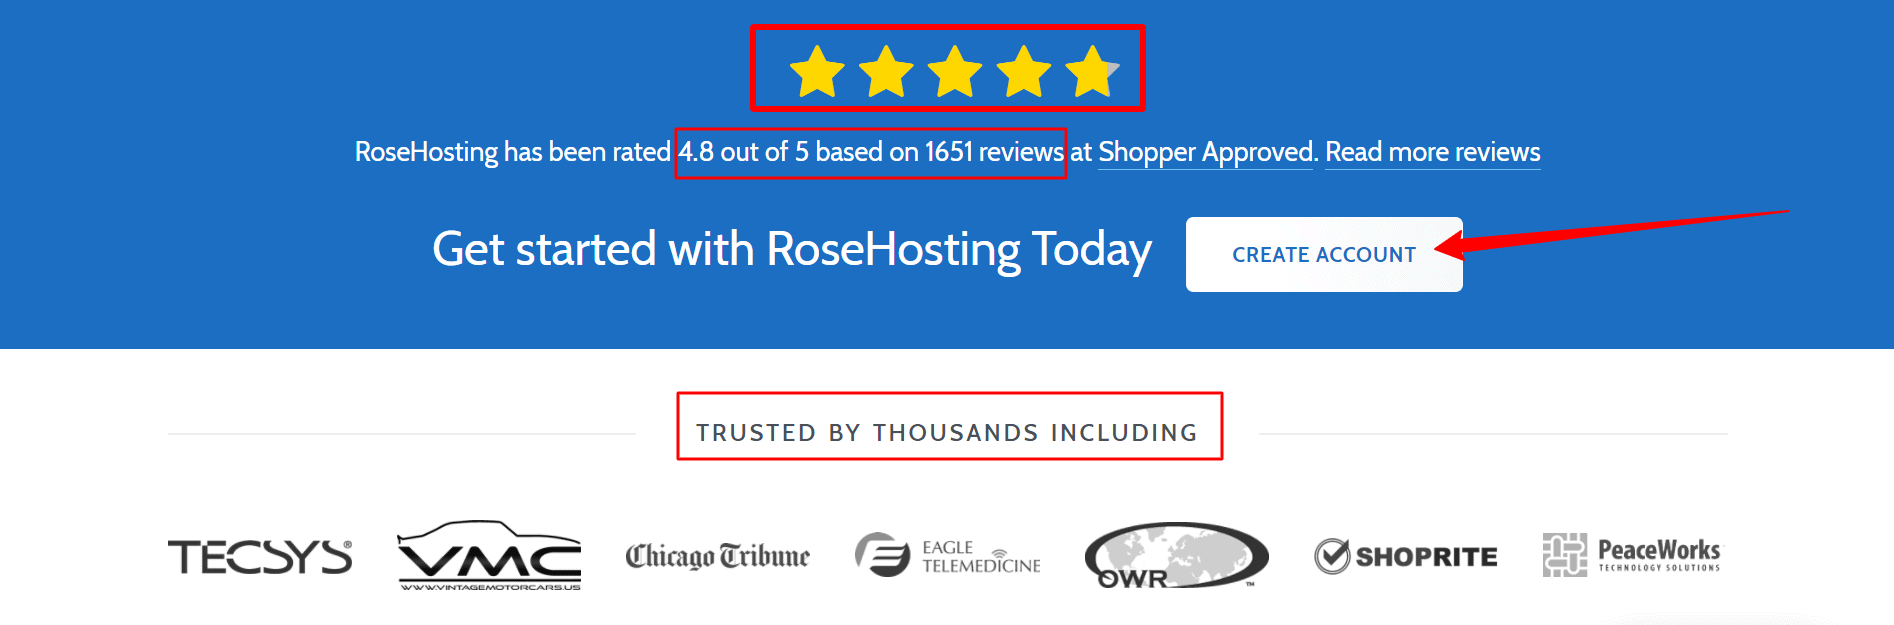 Fully-Managed-Hosting-Services-Cloud-Solutions-RoseHosting